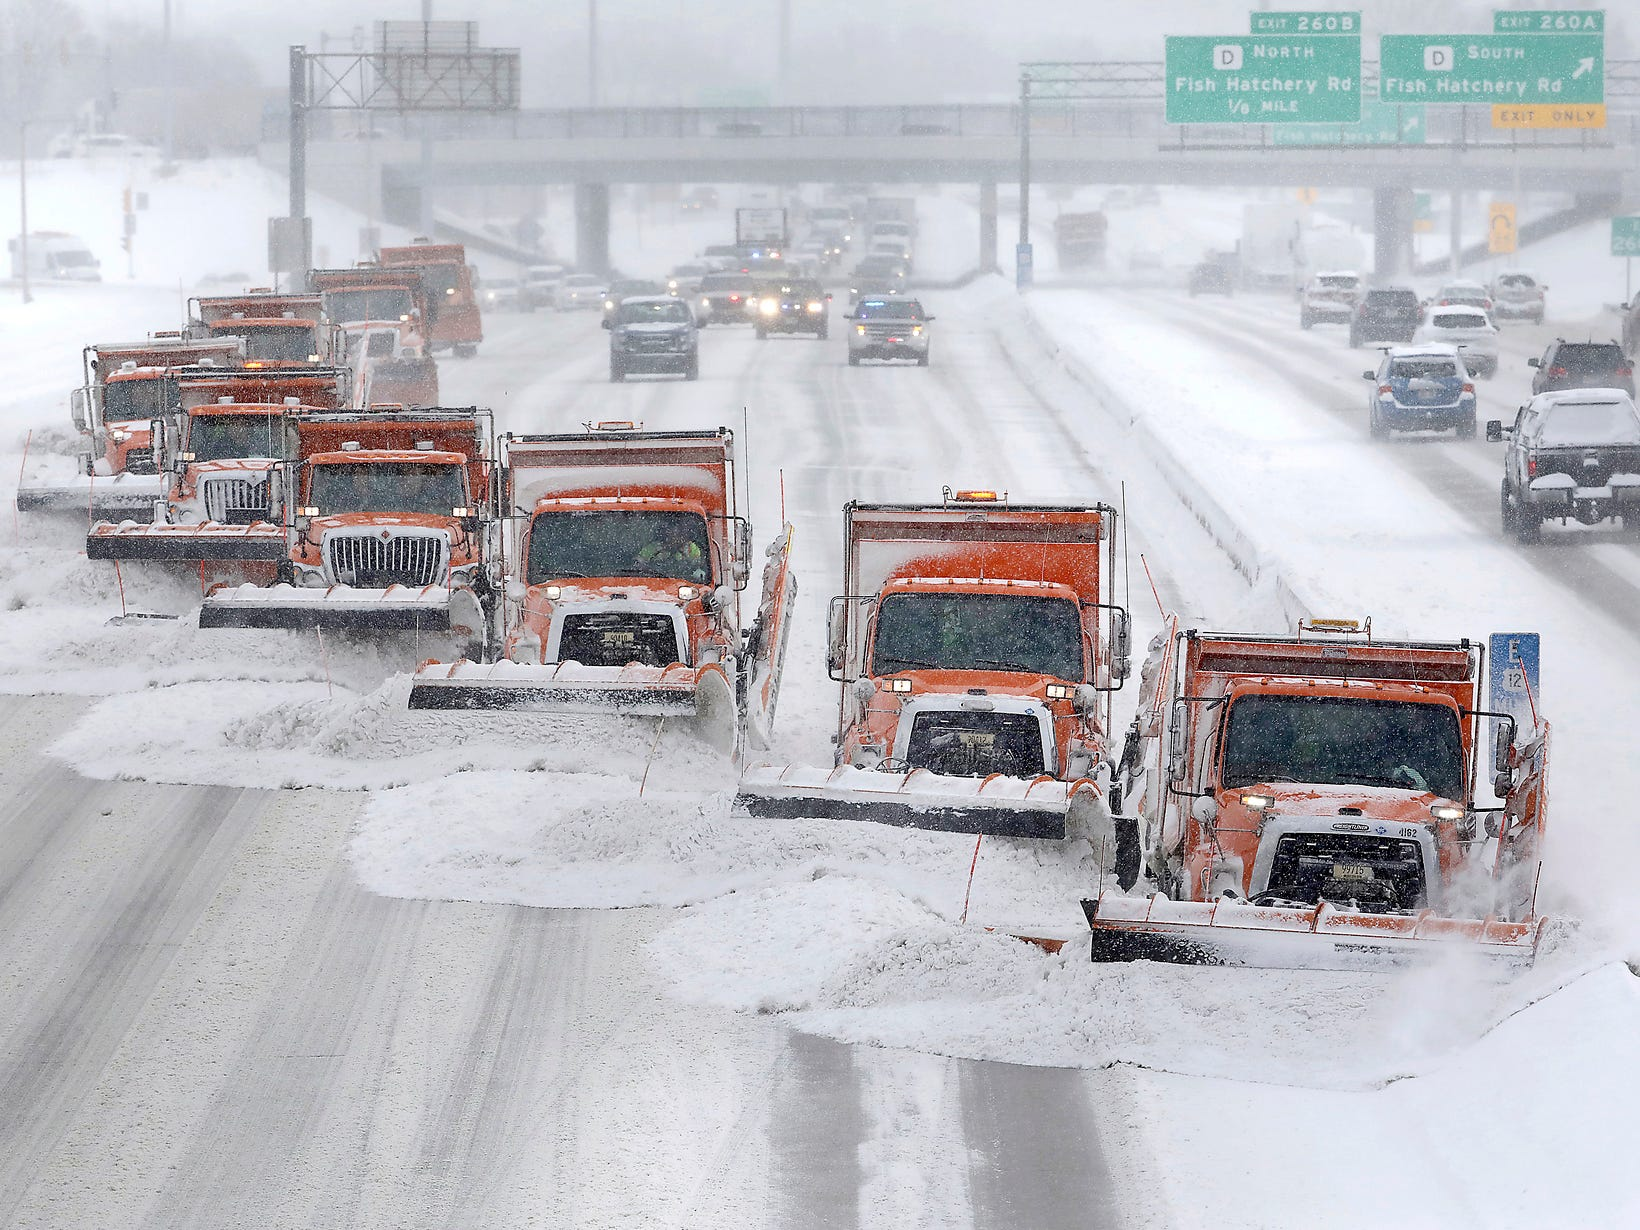 As a winter storm system moves through the upper Midwest, a plowing operation involving Dane County, Wis. snow plows clears snow from the westbound lanes of U.S. Highway 12/18 in Madison, Wis., Jan. 23, 2019.